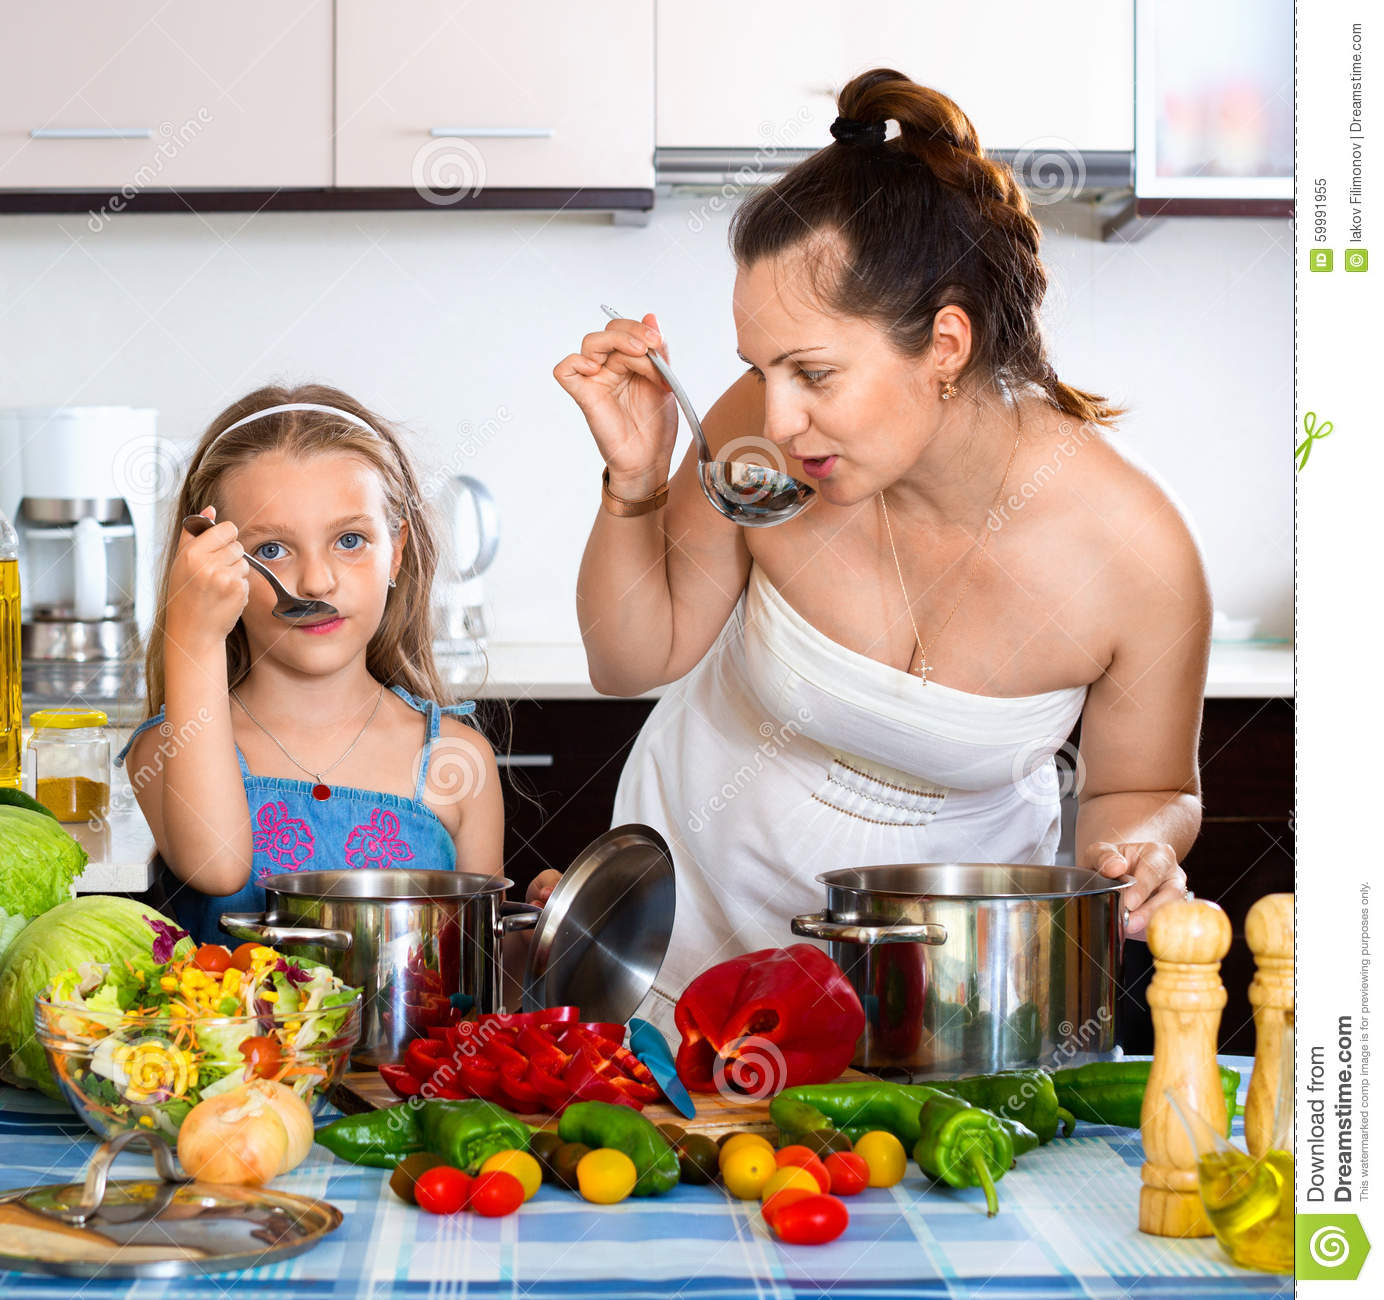 Smiling Happy Girl Helping Mother To Cook Stock Image